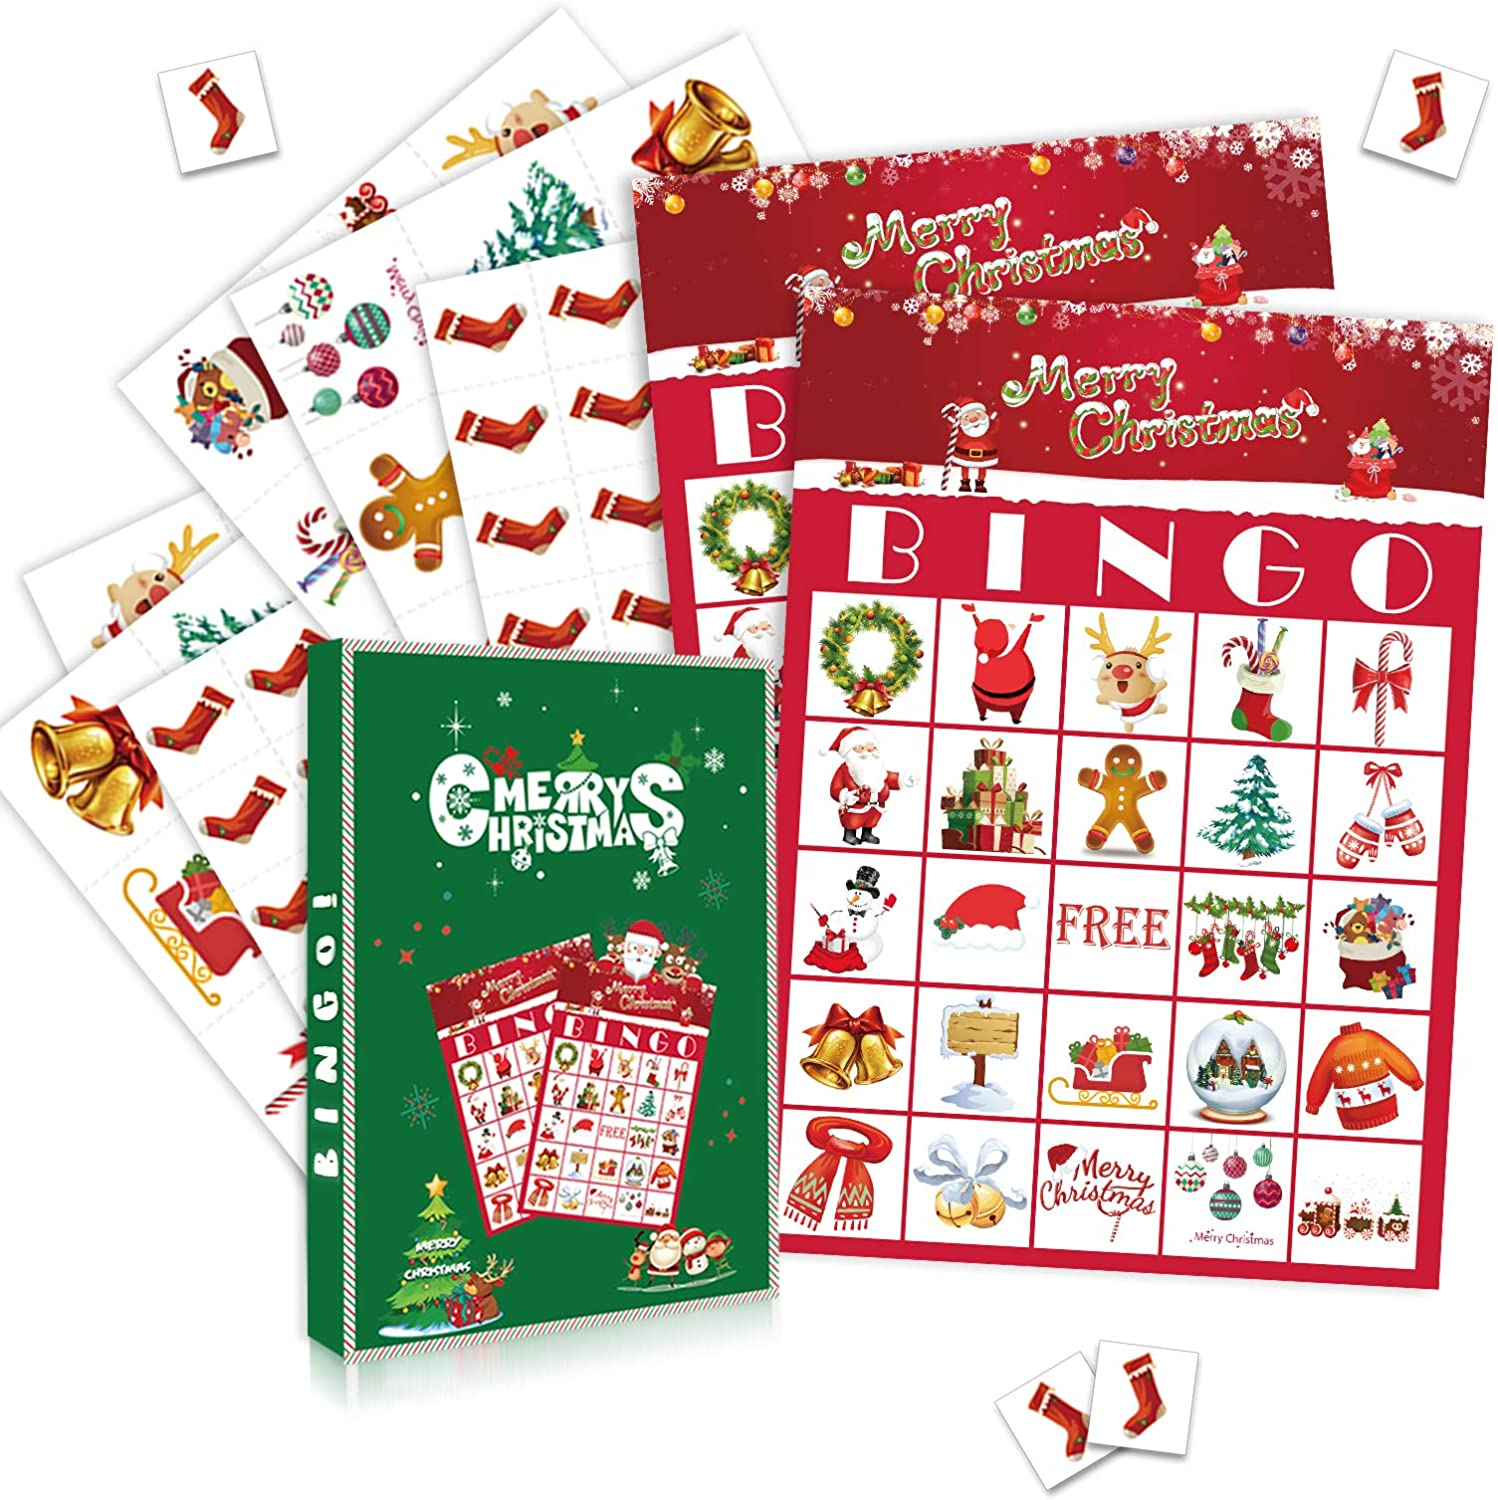 Christmas Bingo Game - Christmas Party Games for 24 Players, Christmas Bingo Game Cards for School Classroom Family Activities Holiday Party Favors, Winter Fun Supplies for Kids & Adults